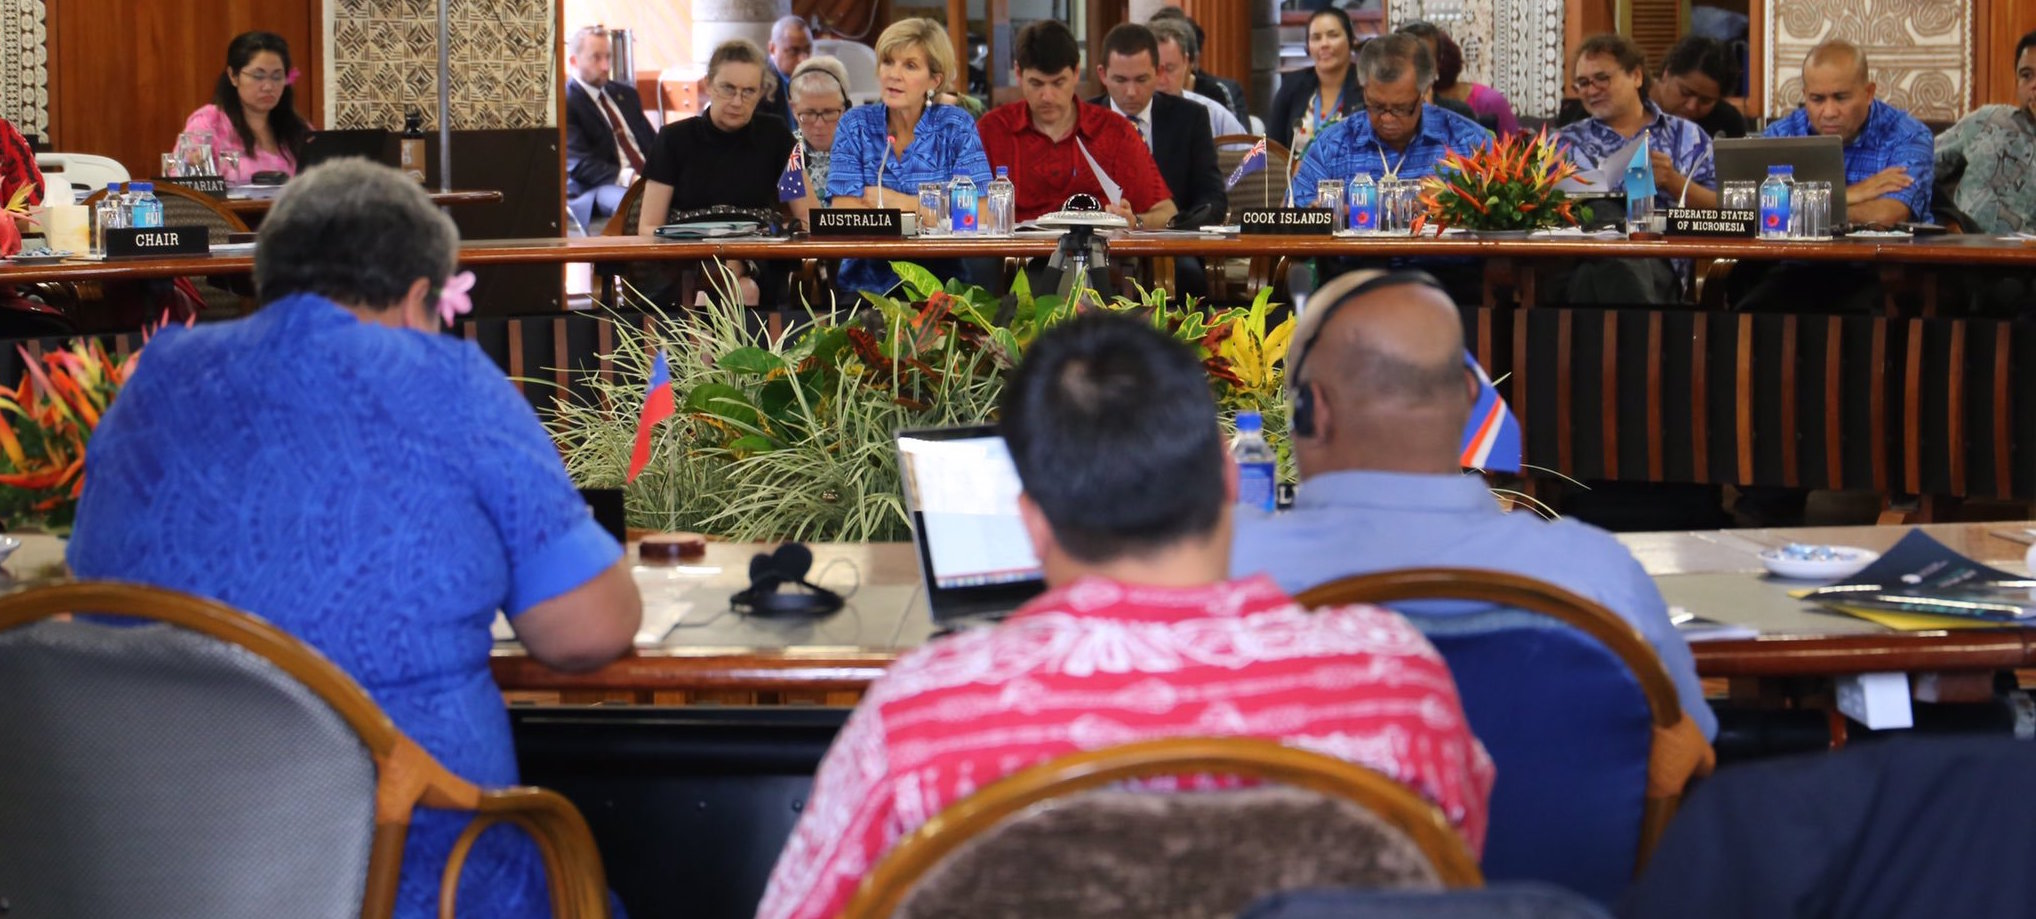 Foreign Minister Julie Bishop in 2015 at a Pacific roundtable (Photo: @JulieBishopMP/Twitter)